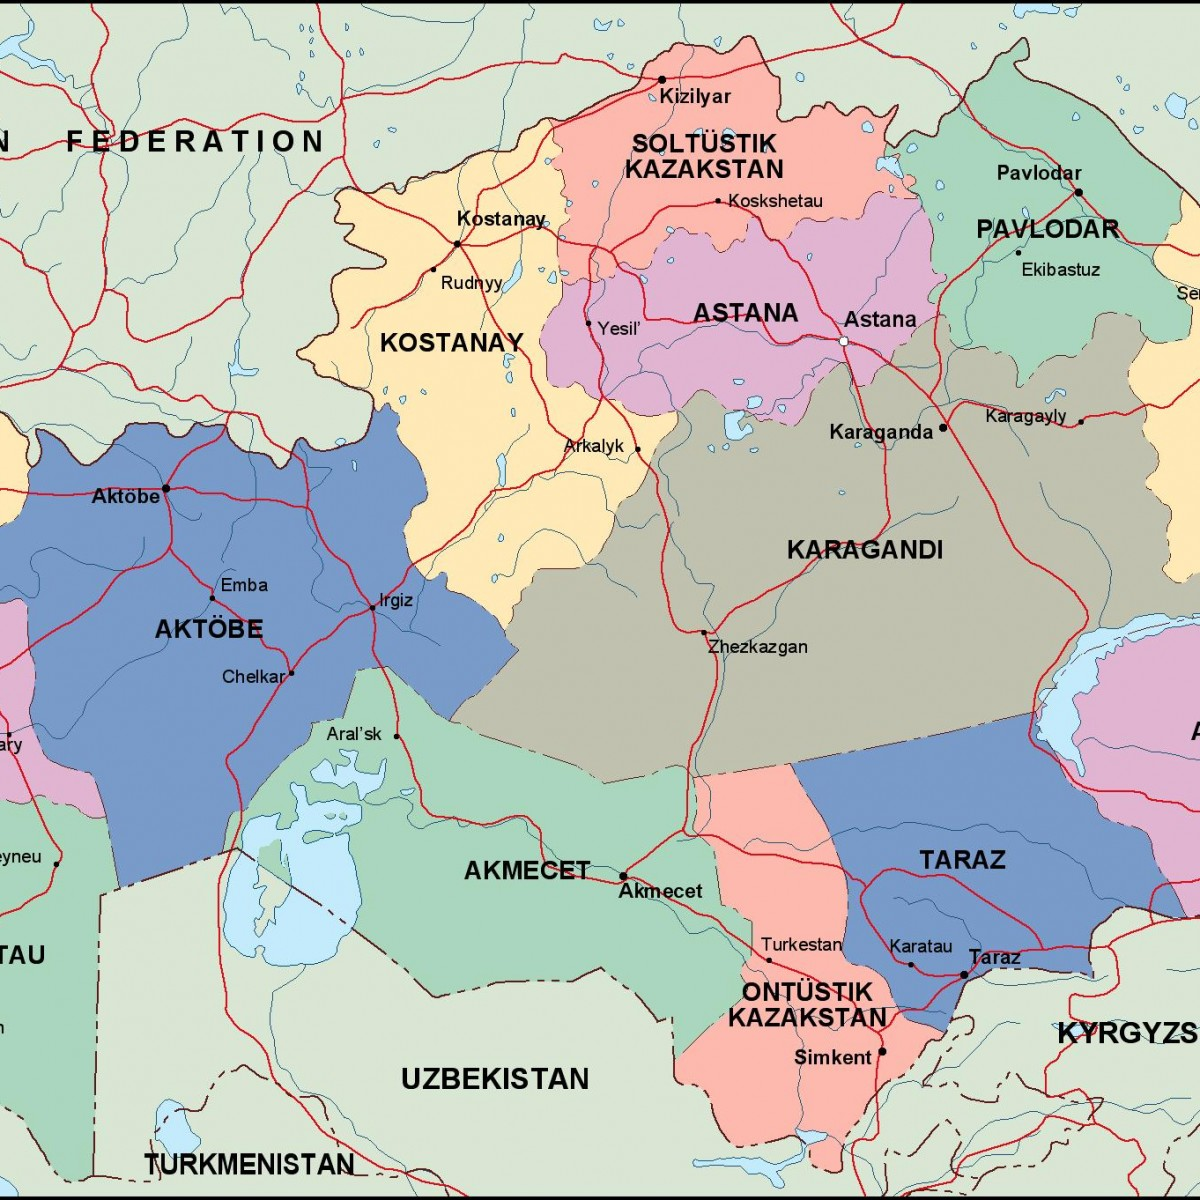 kazajstan political map. Eps Illustrator Map | Vector World Maps on